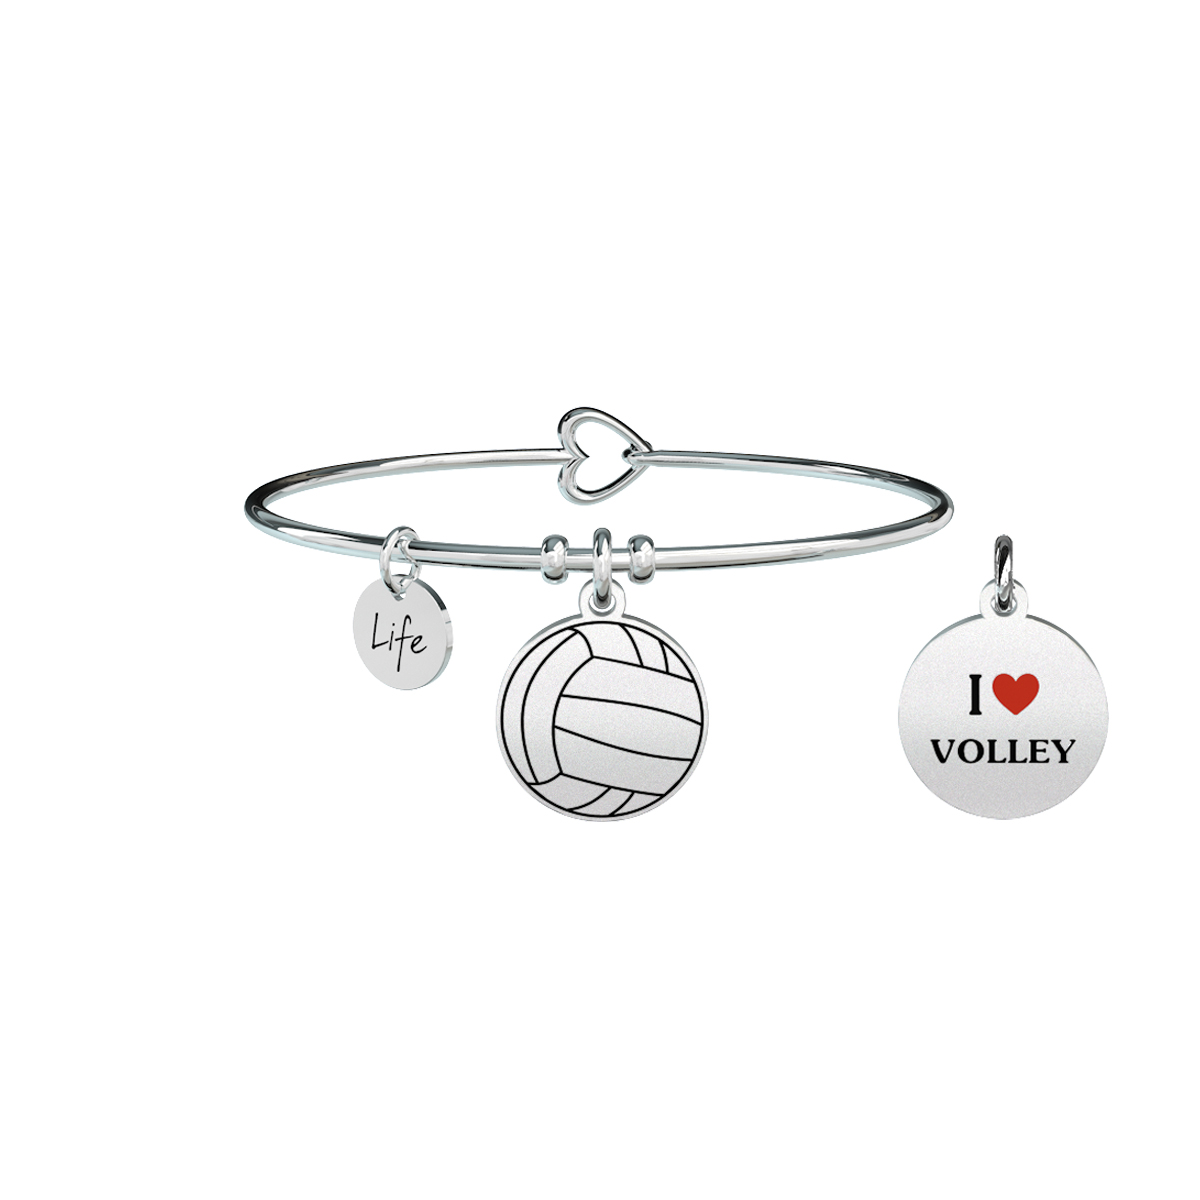 Bracciale KIDULT Free time acciaio 316L 731293 I love volley